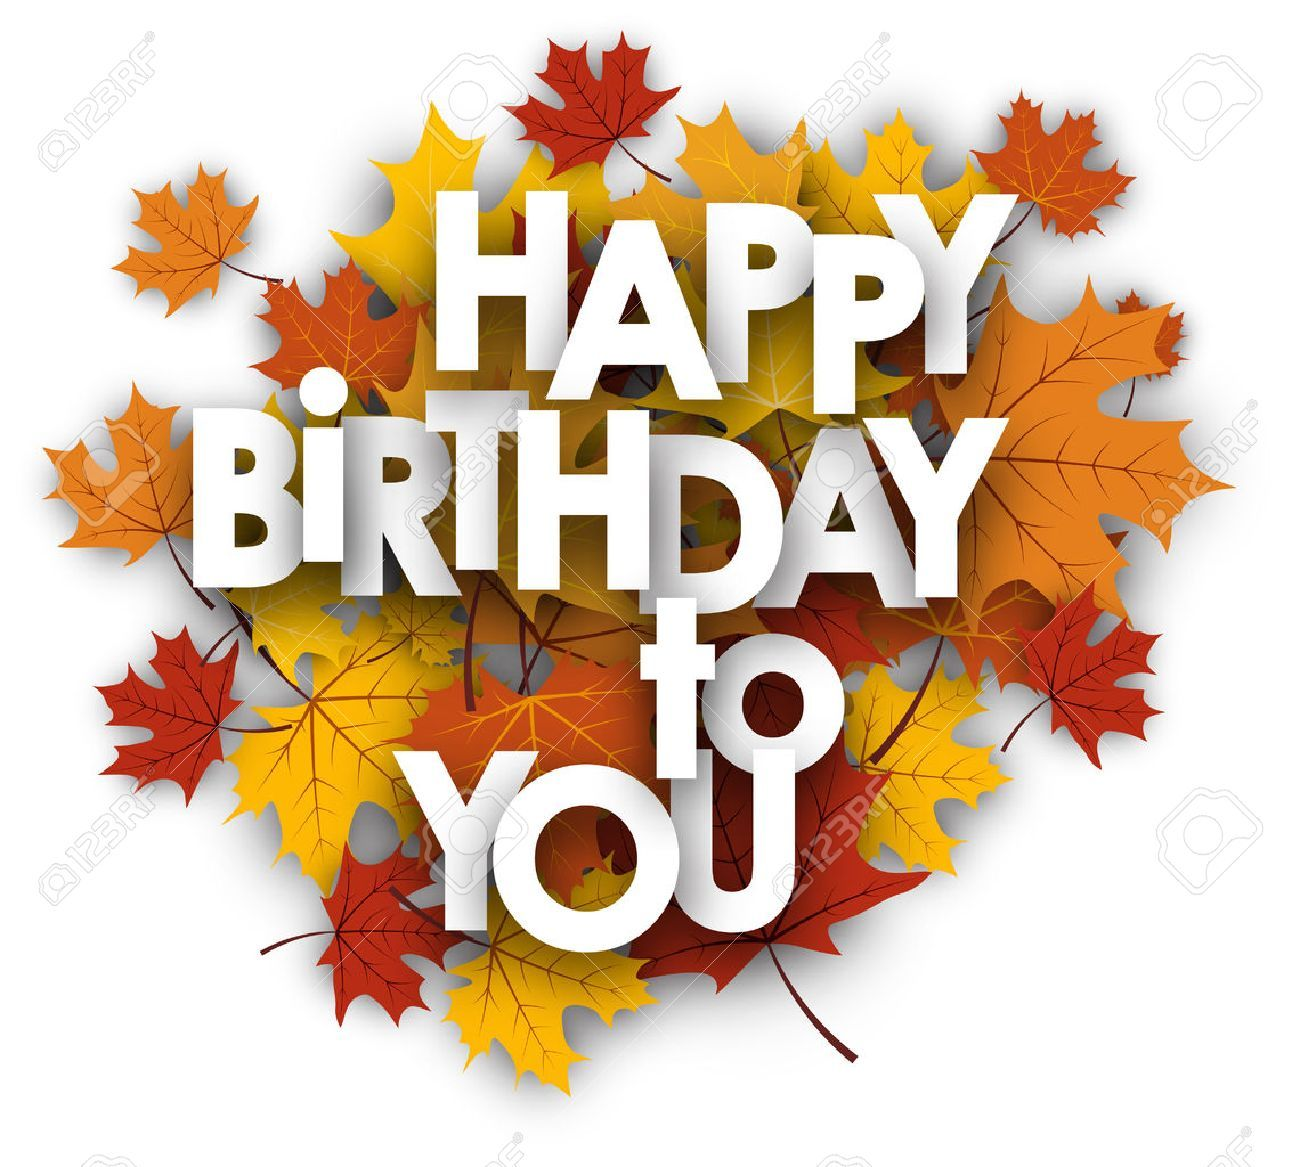 clipart freeuse download Fall happy birthday clipart. Image result for